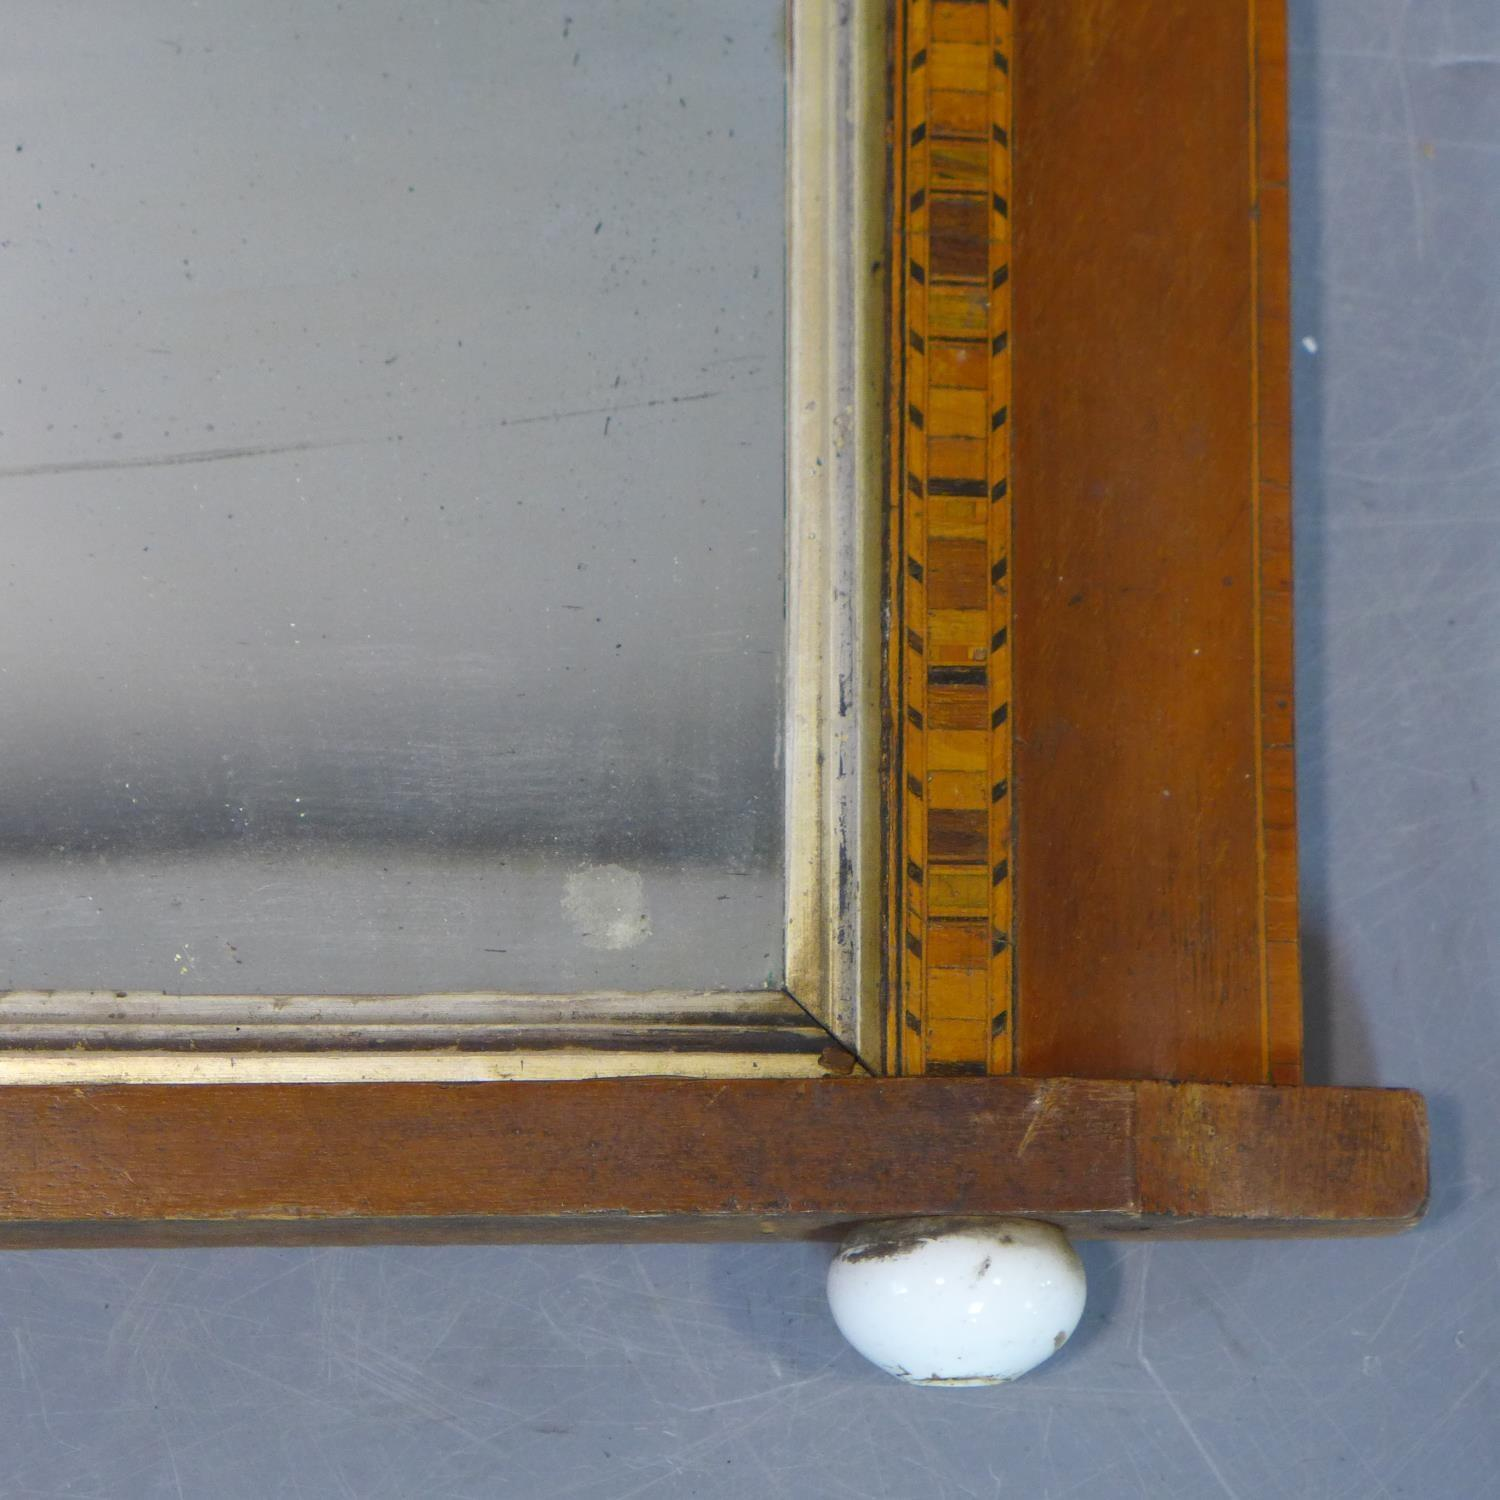 Lot 173 - An inlaid overmantle mirror with original glass plate, on ceramic ball feet, 49 x 85cm